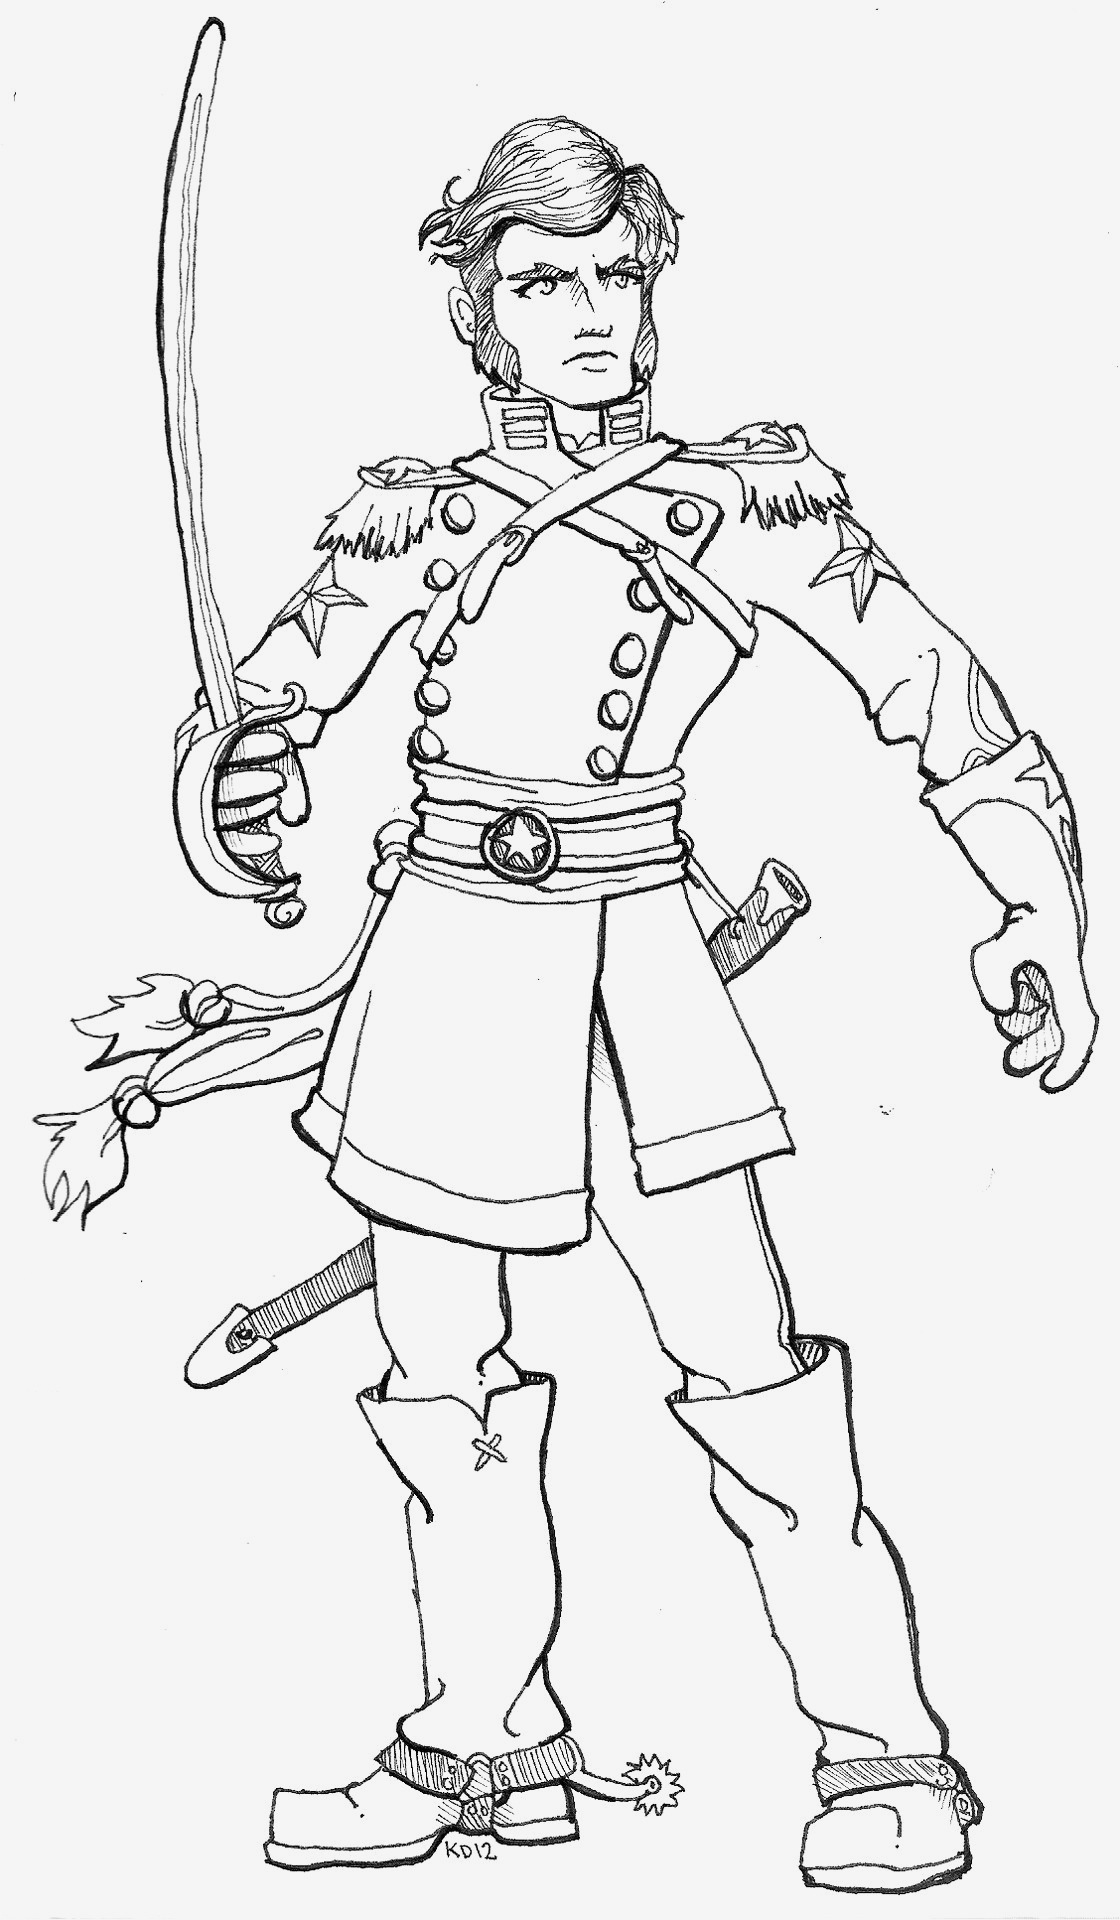 free ninja coloring pages Download-Difficult Coloring Pages Best Easy Coloering Pages New Color Pages Best sol R Coloring Pages Best 0d 3-q